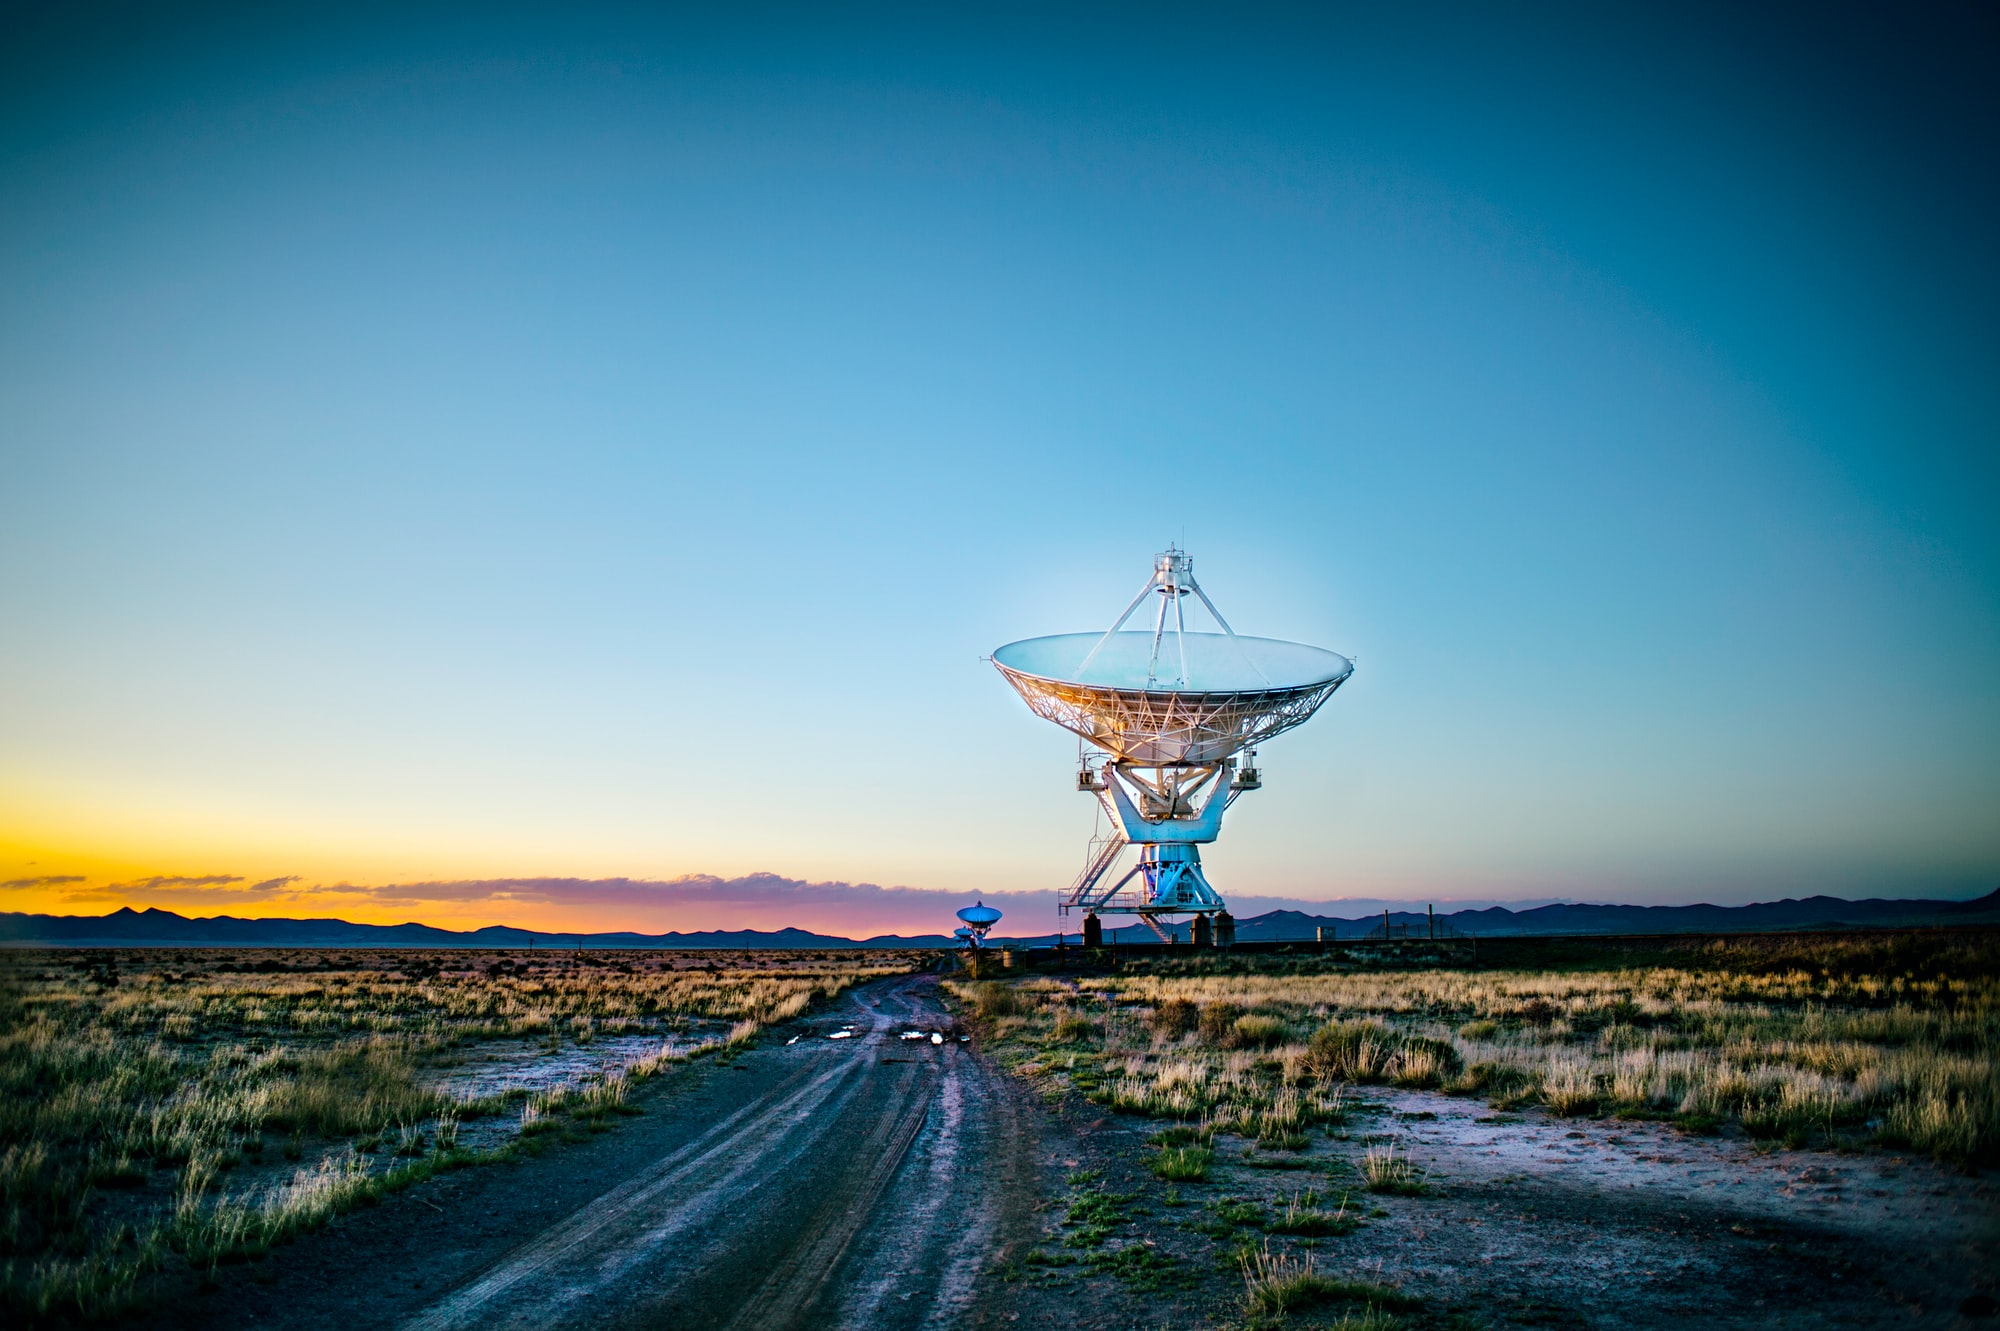 AI powered search for extra-terrestrial intelligence — deep learning signal classifiers